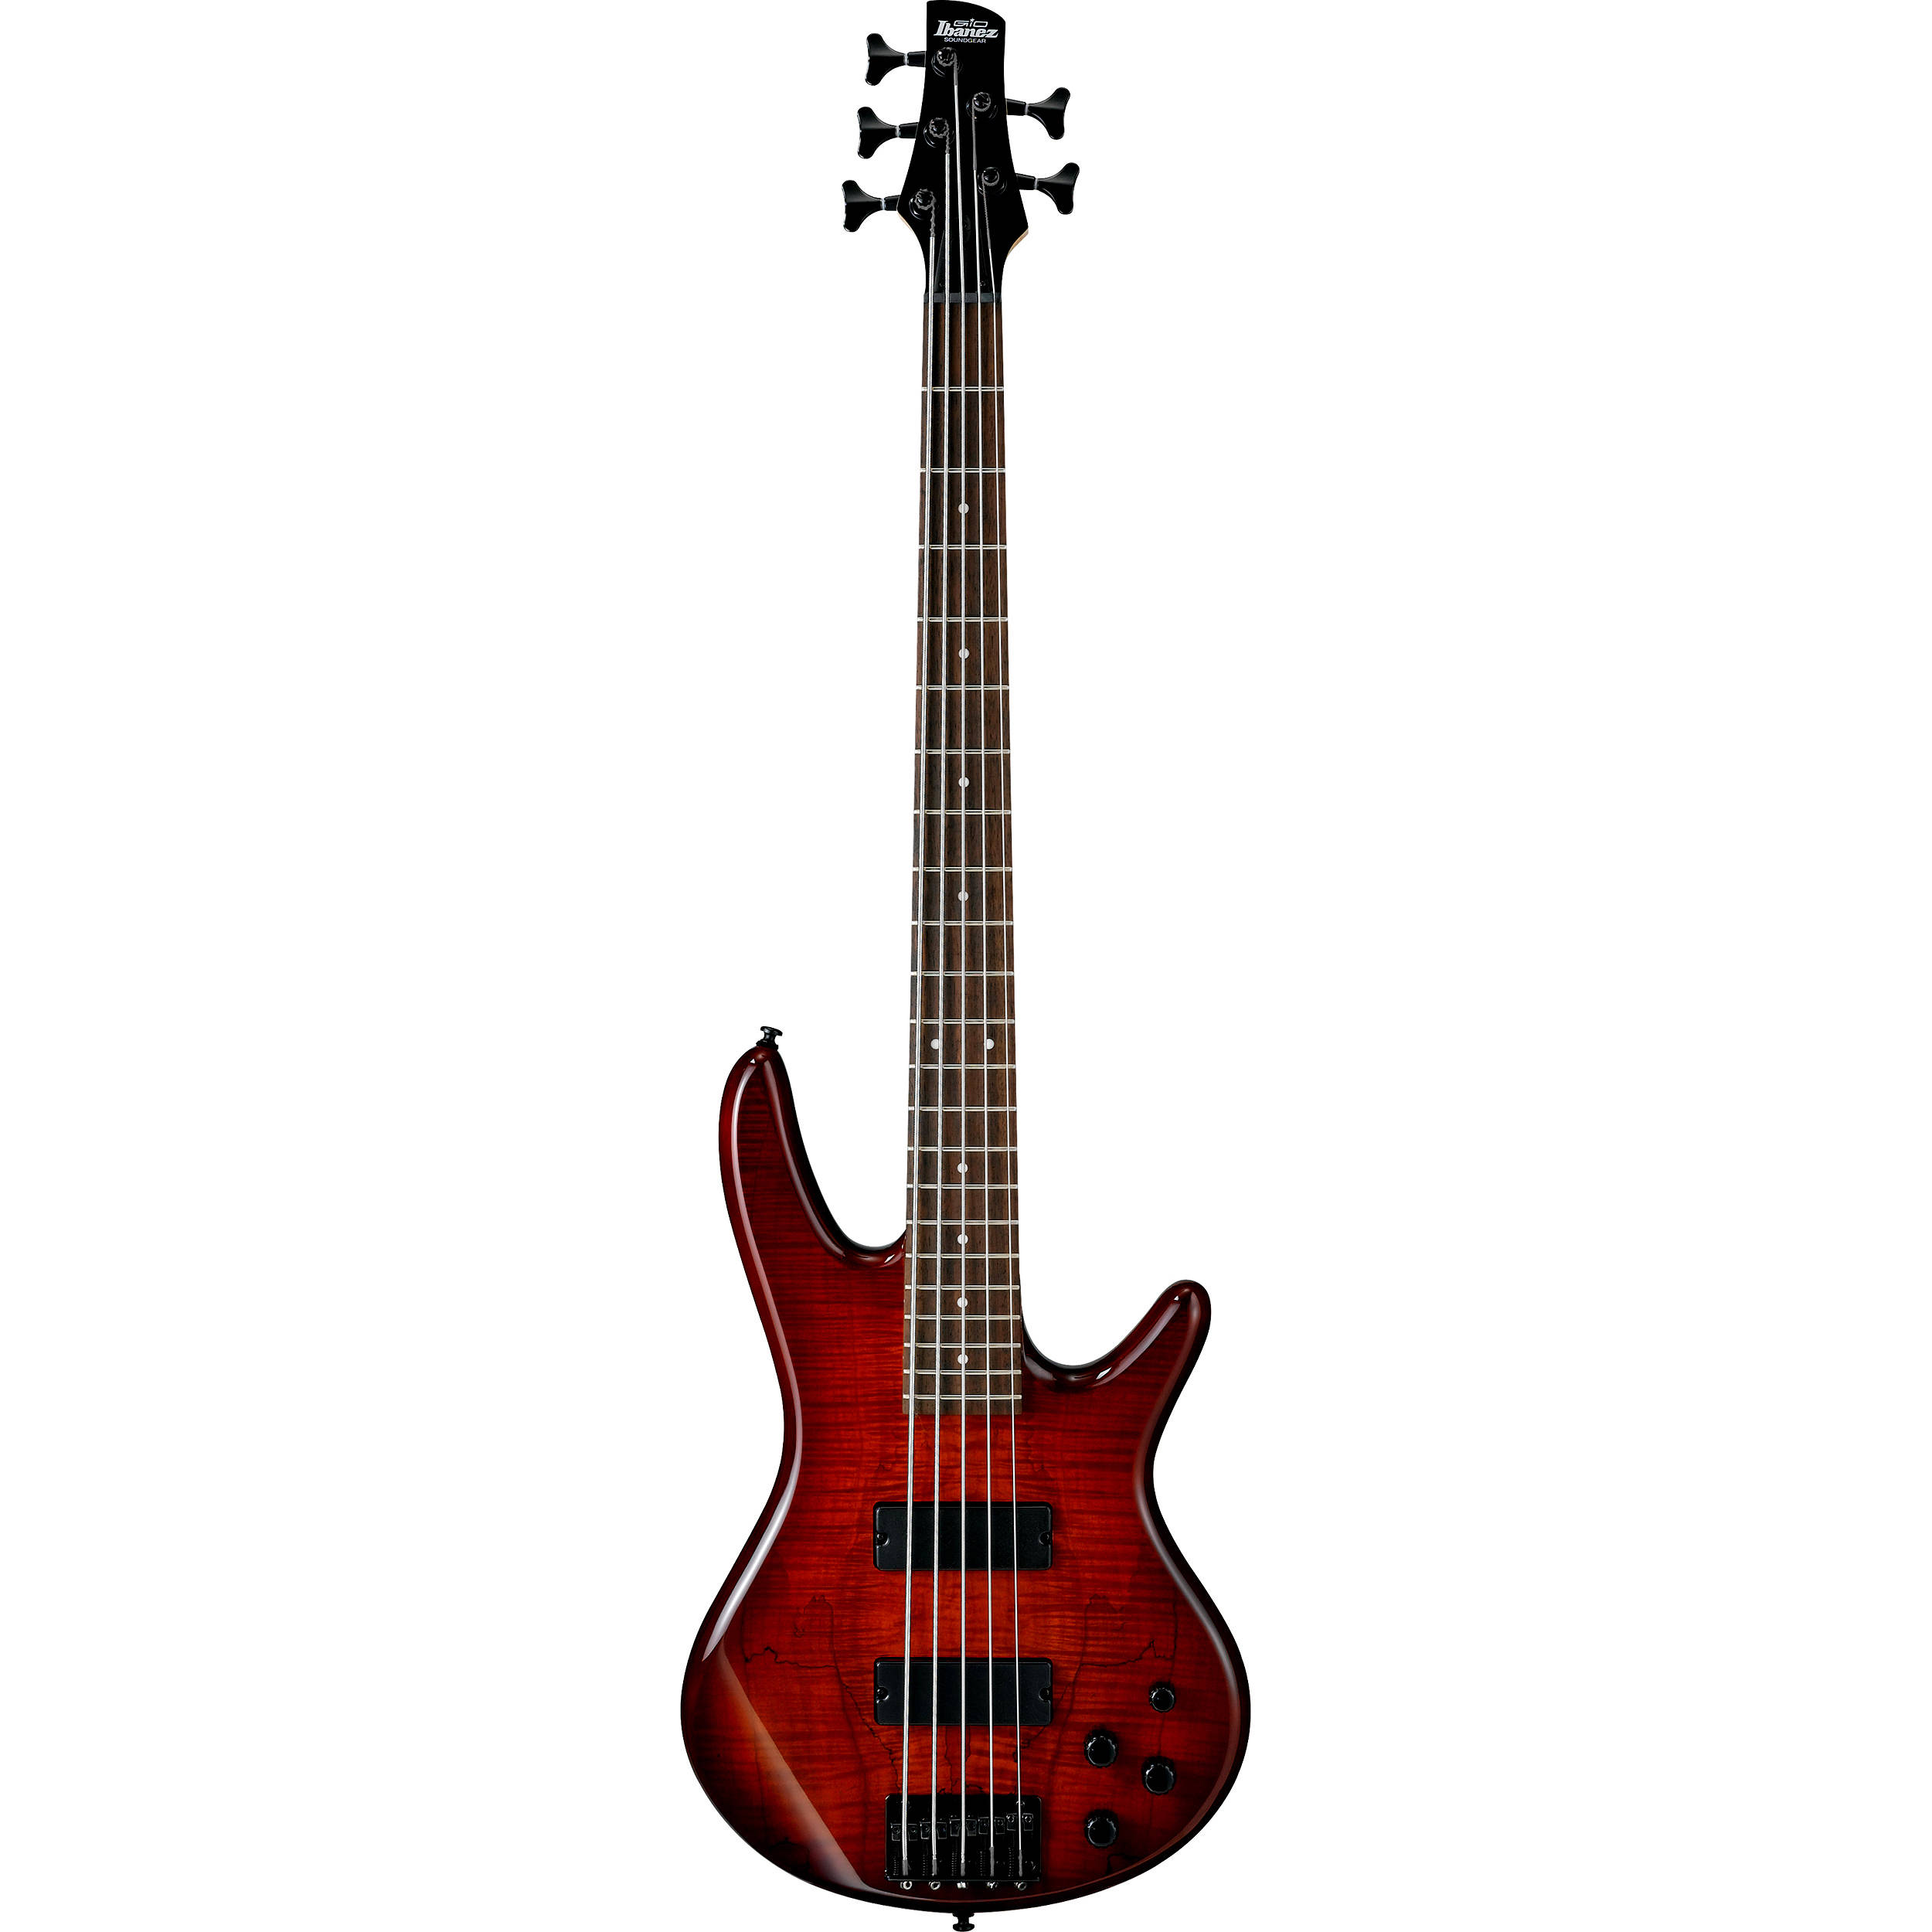 ibanez gsr205smcnb gio series 5 string electric bass gsr205smcnb. Black Bedroom Furniture Sets. Home Design Ideas